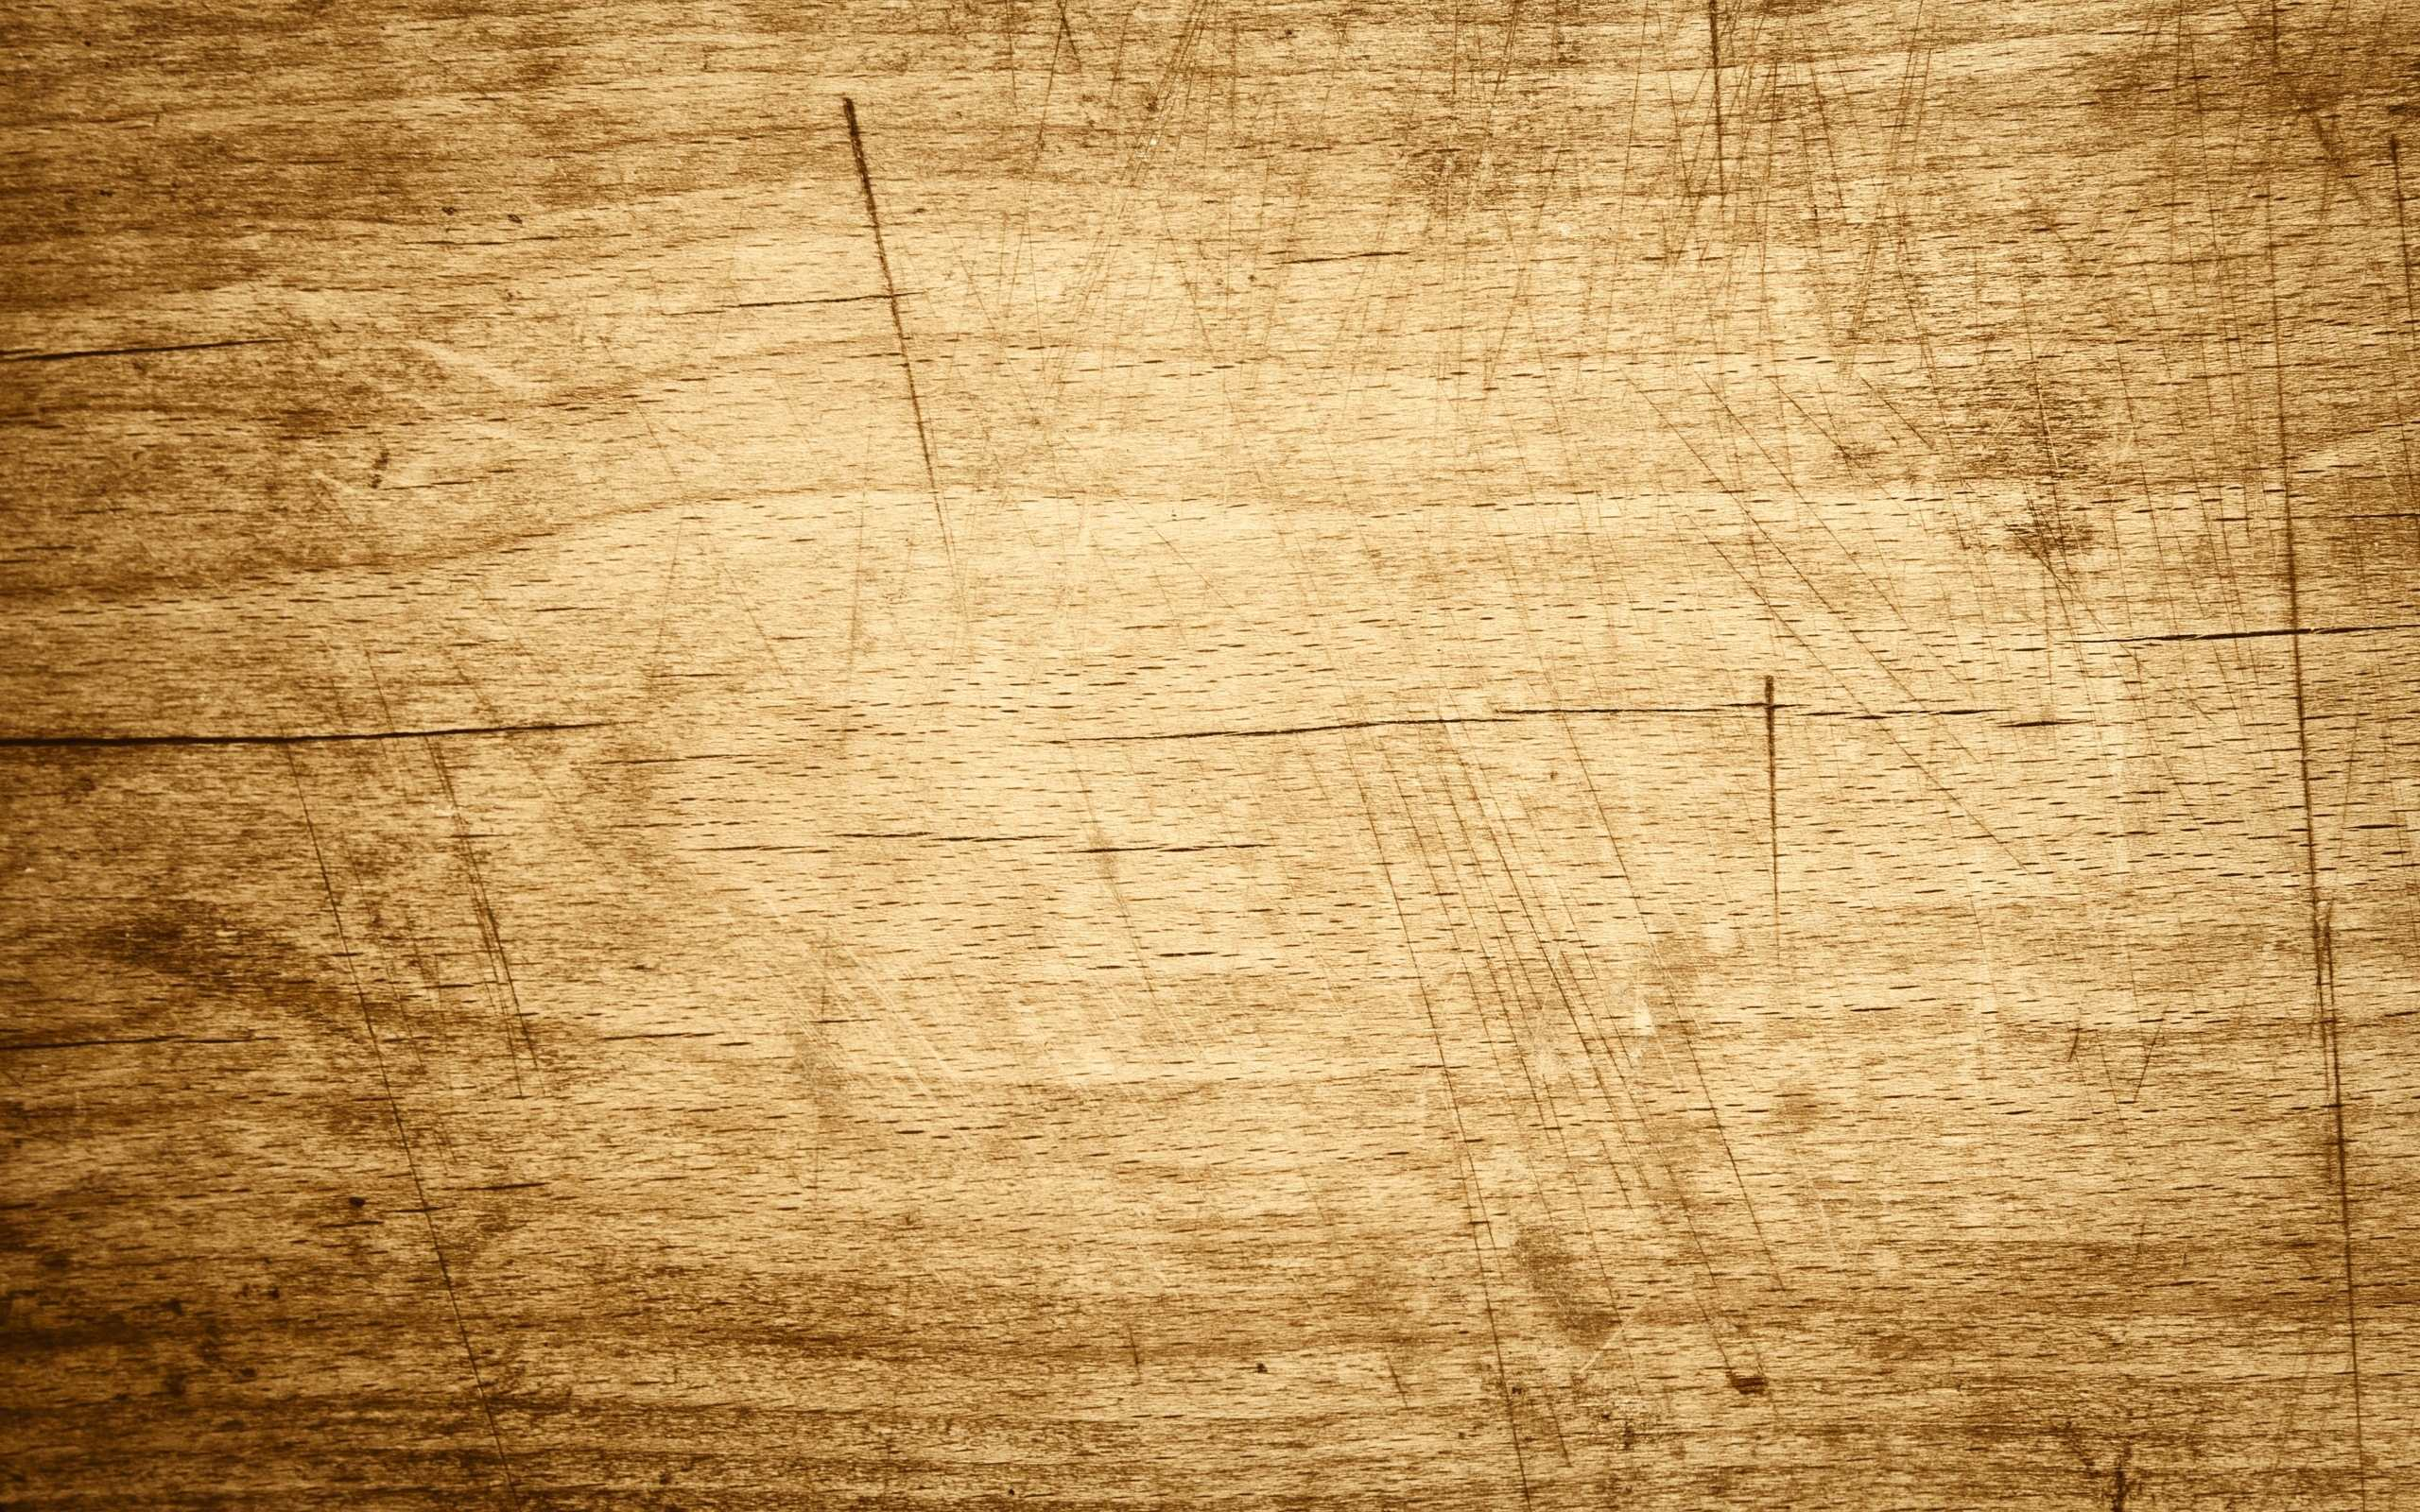 Light Rustic Wood Background Images